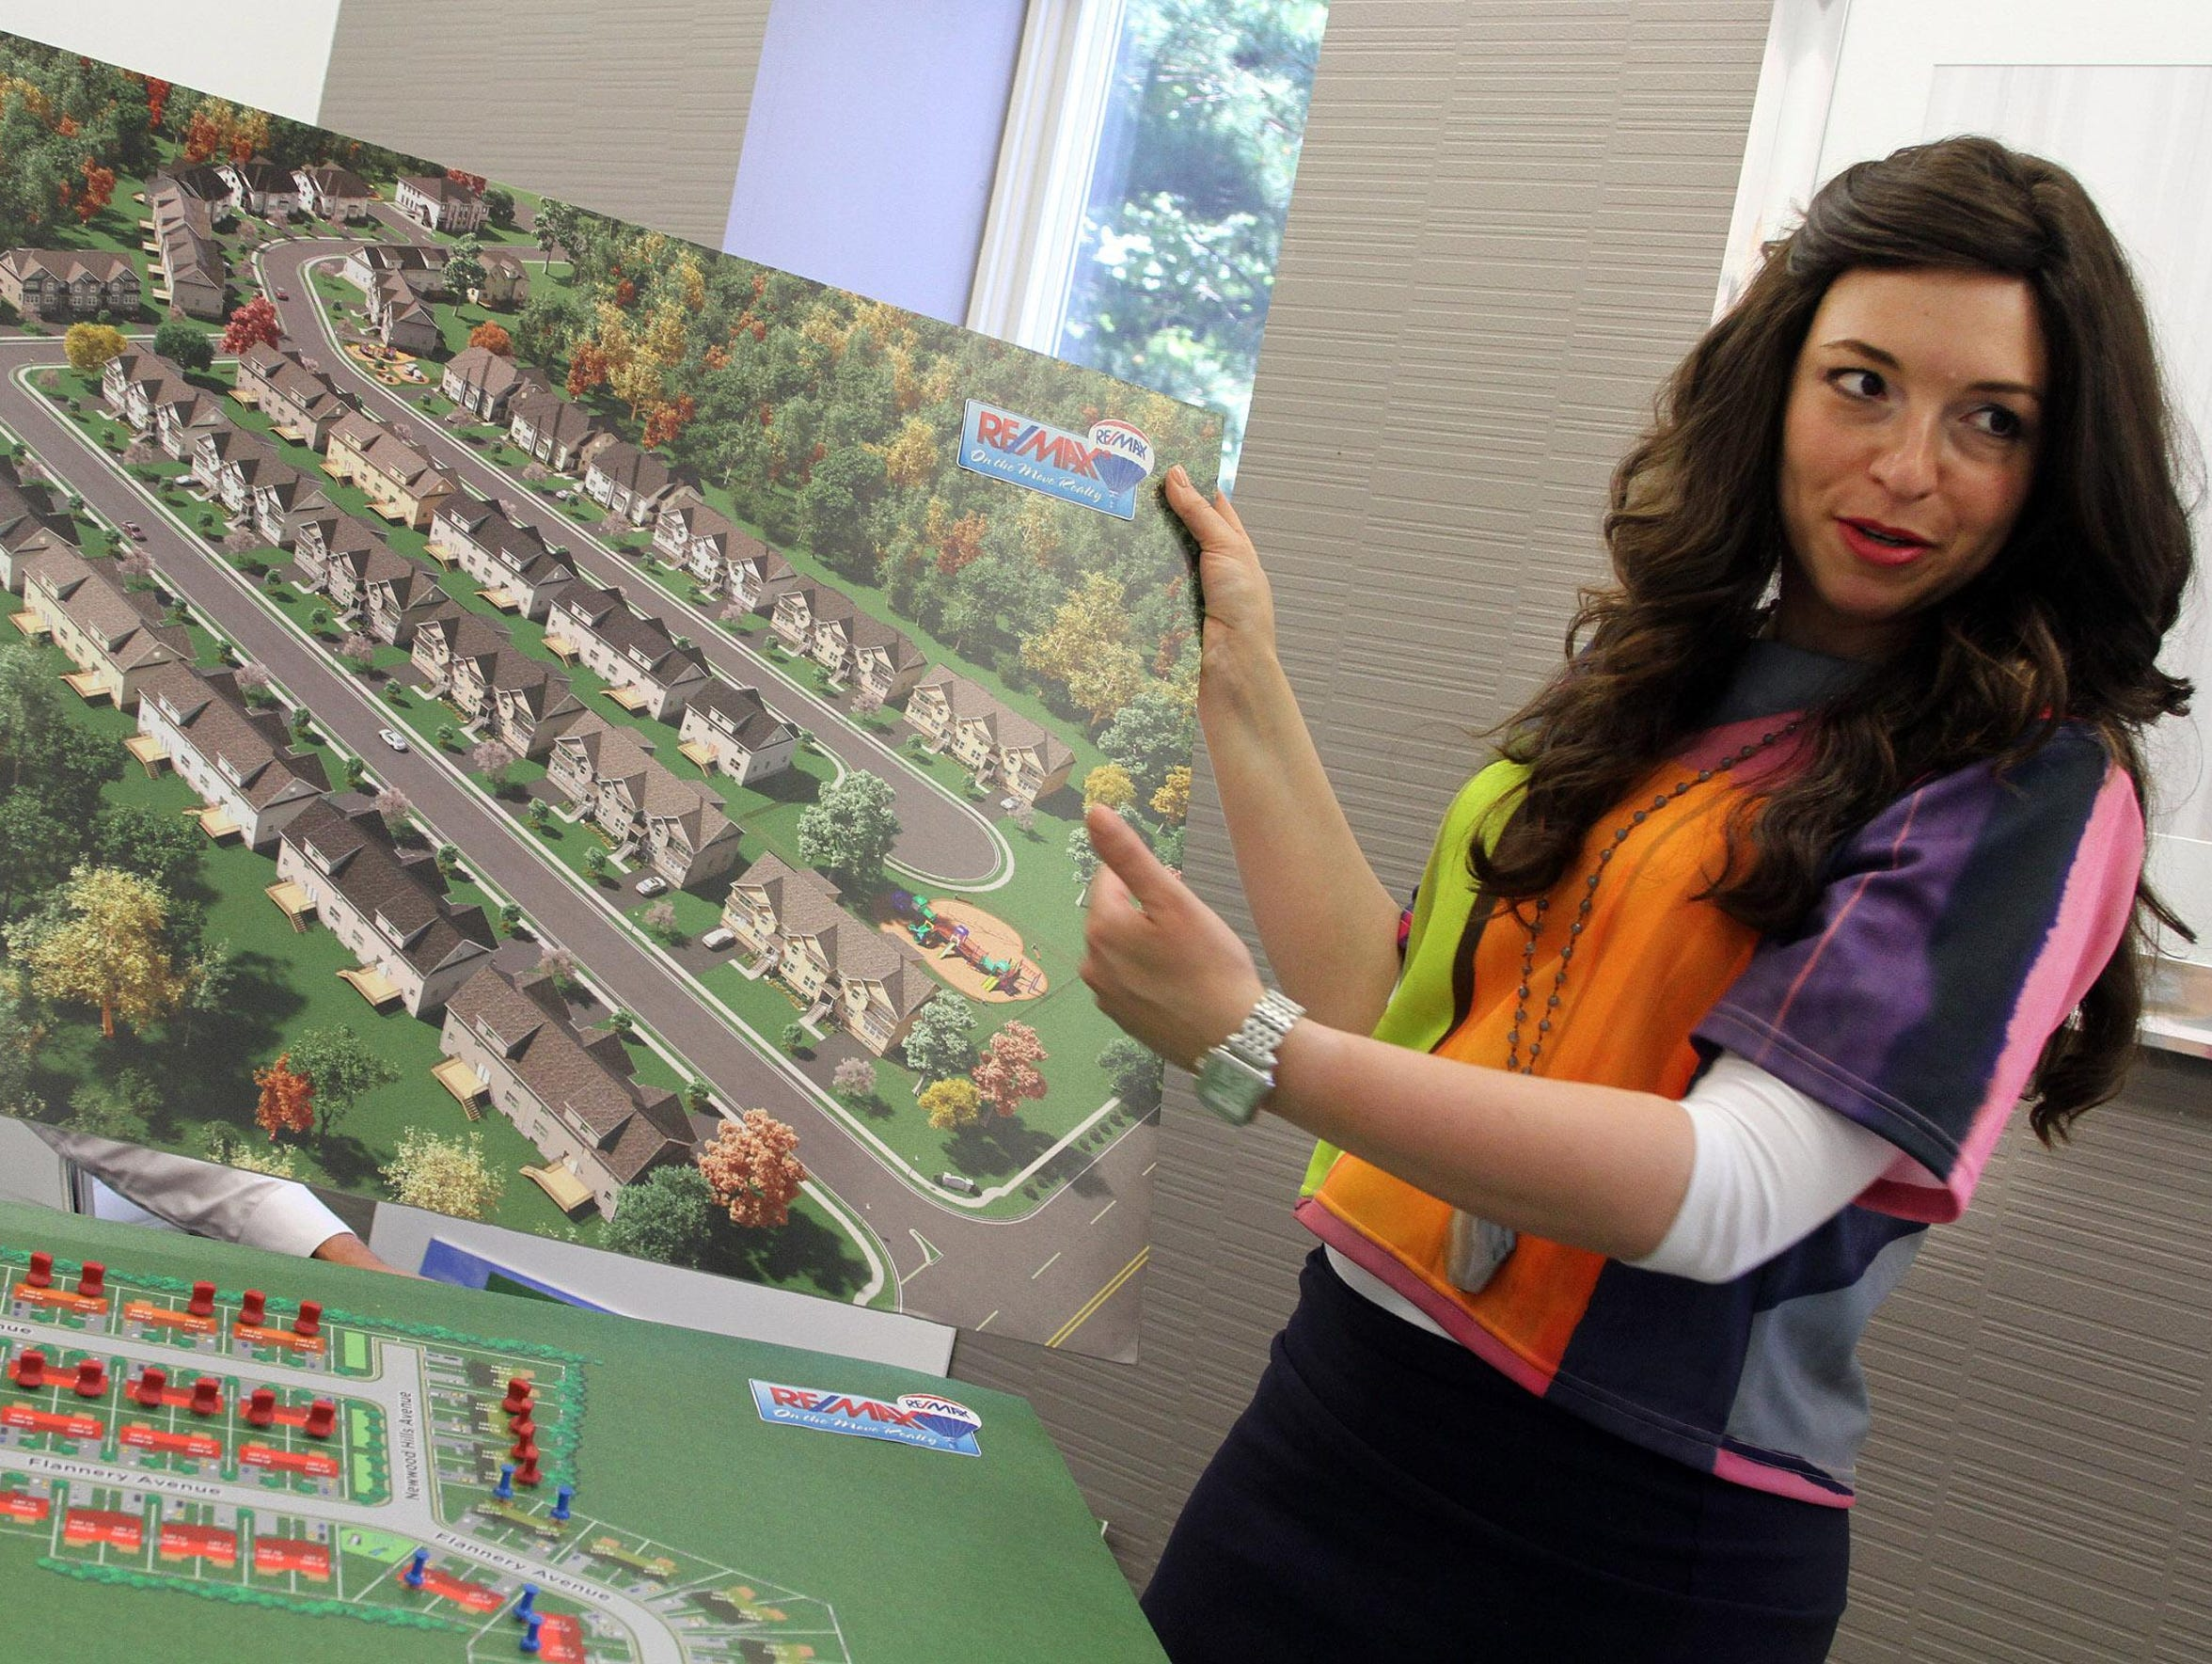 Re/Max realtor Esther Klein talks about the plans for